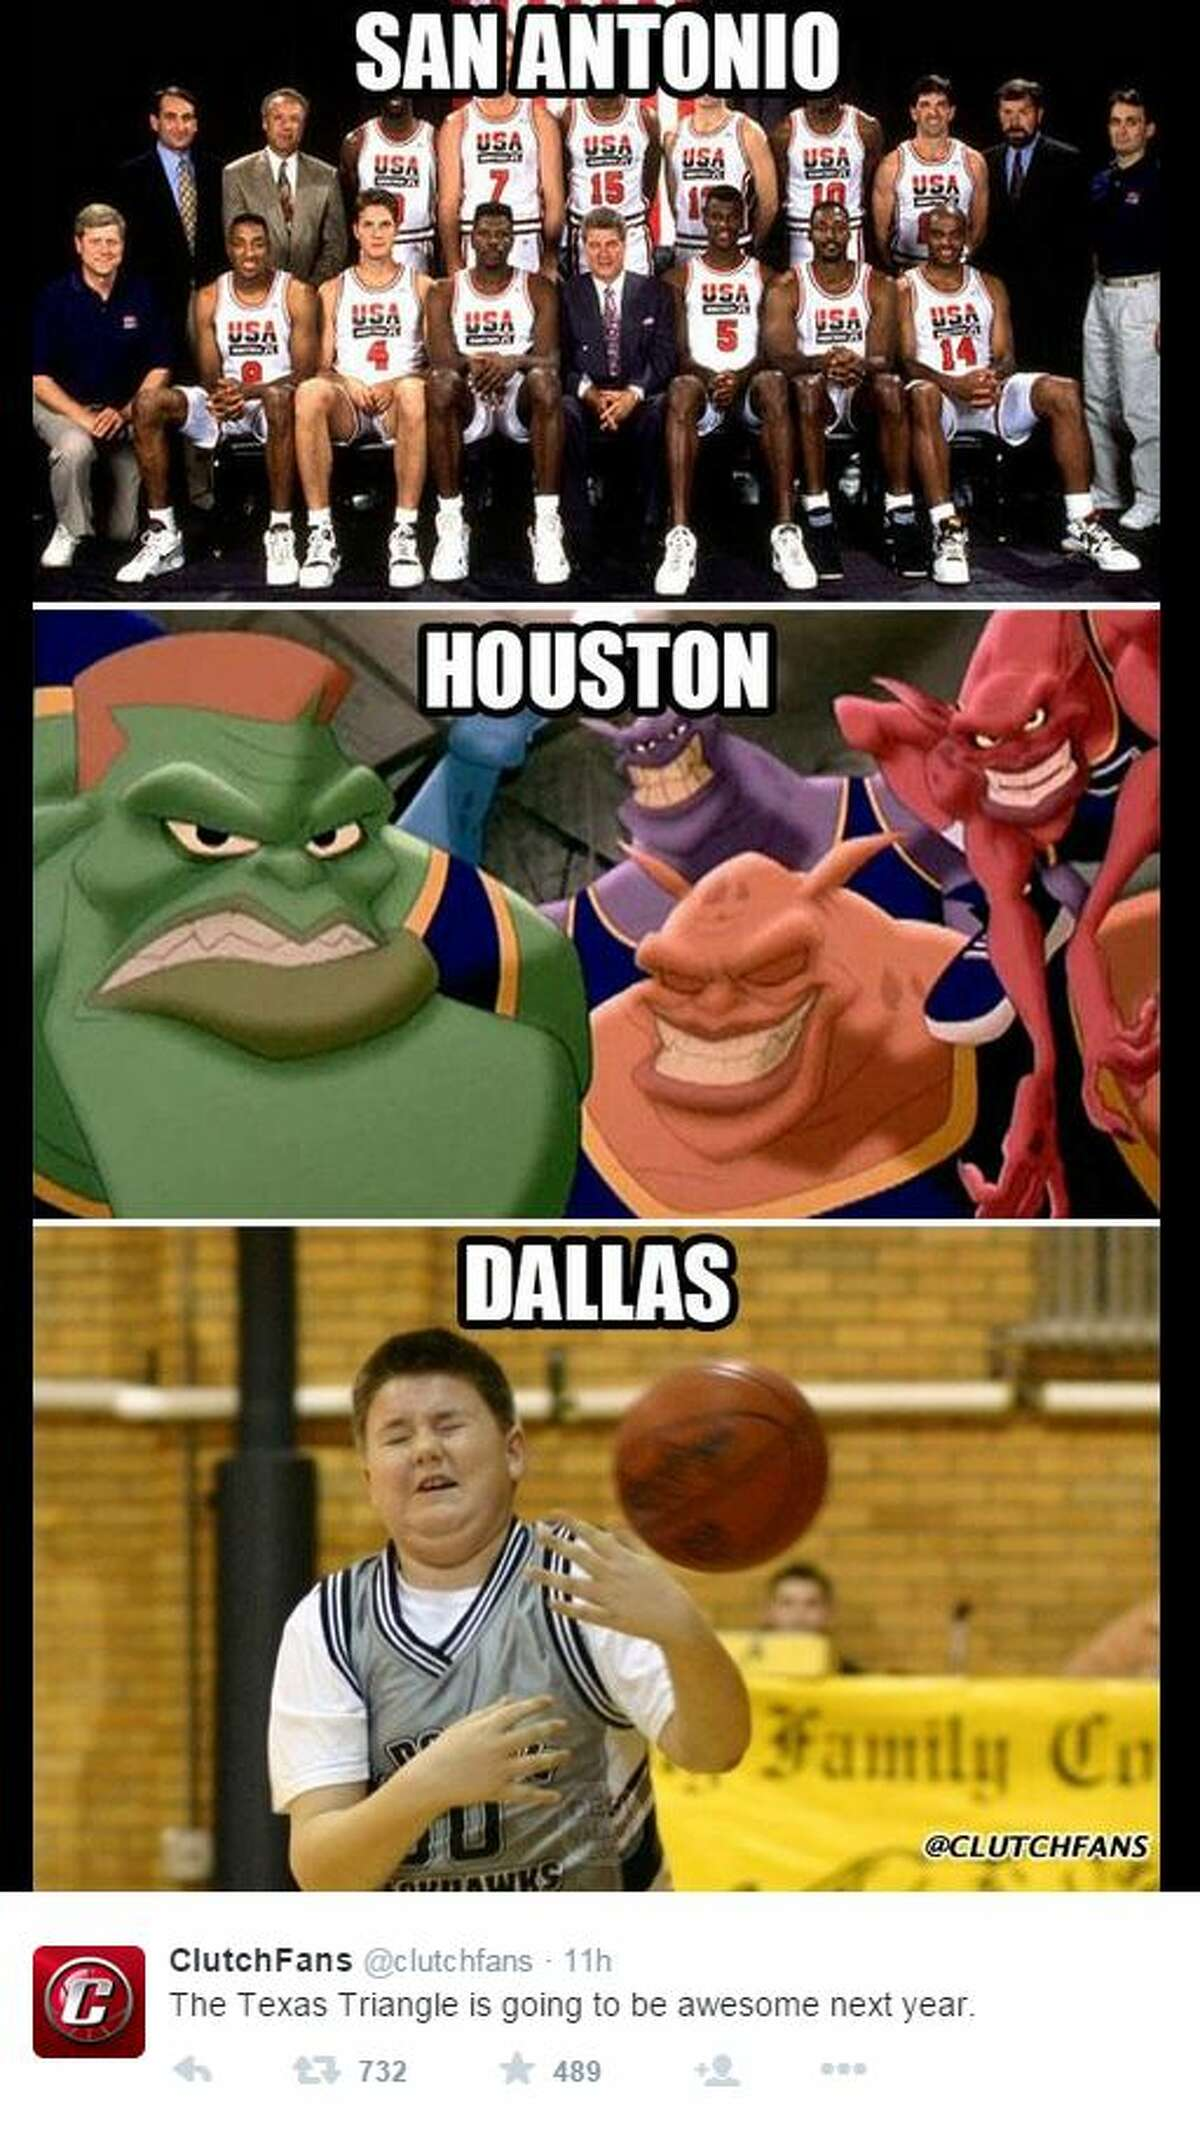 """""""The Texas Triangle is going to be awesome next year. """" - Clutch Fans, @clutchfans"""